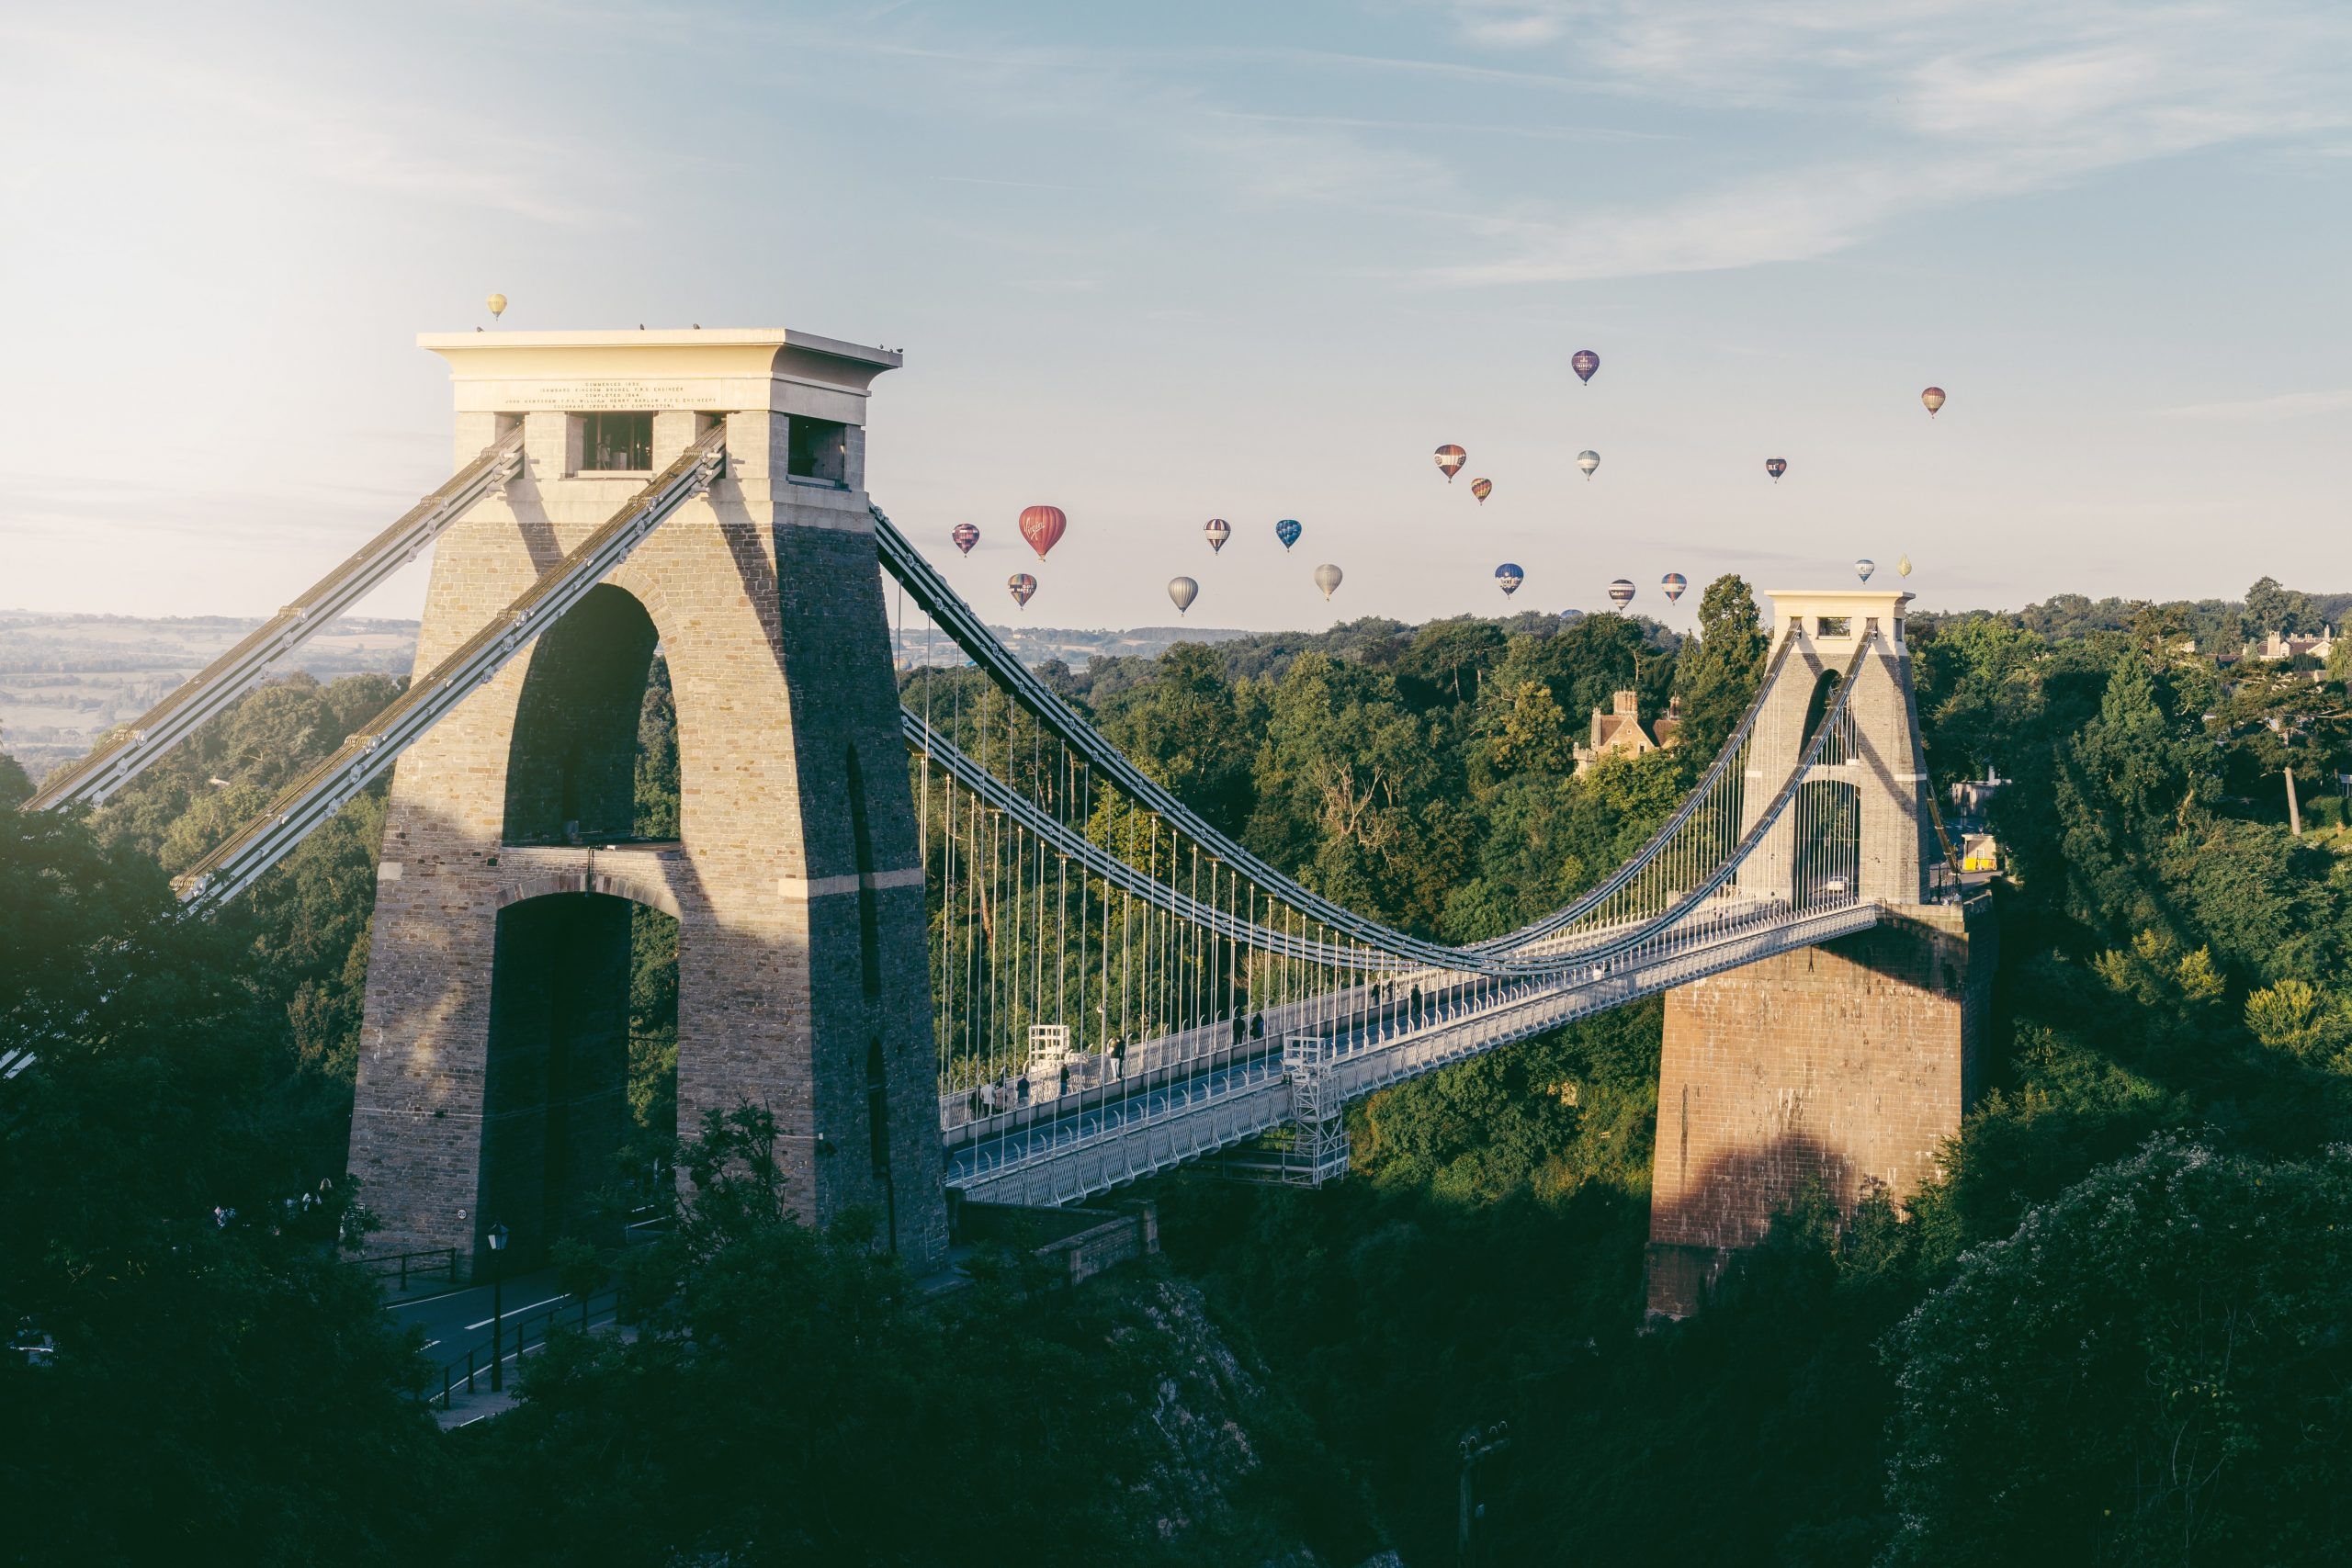 City Guide for the English City Bristol